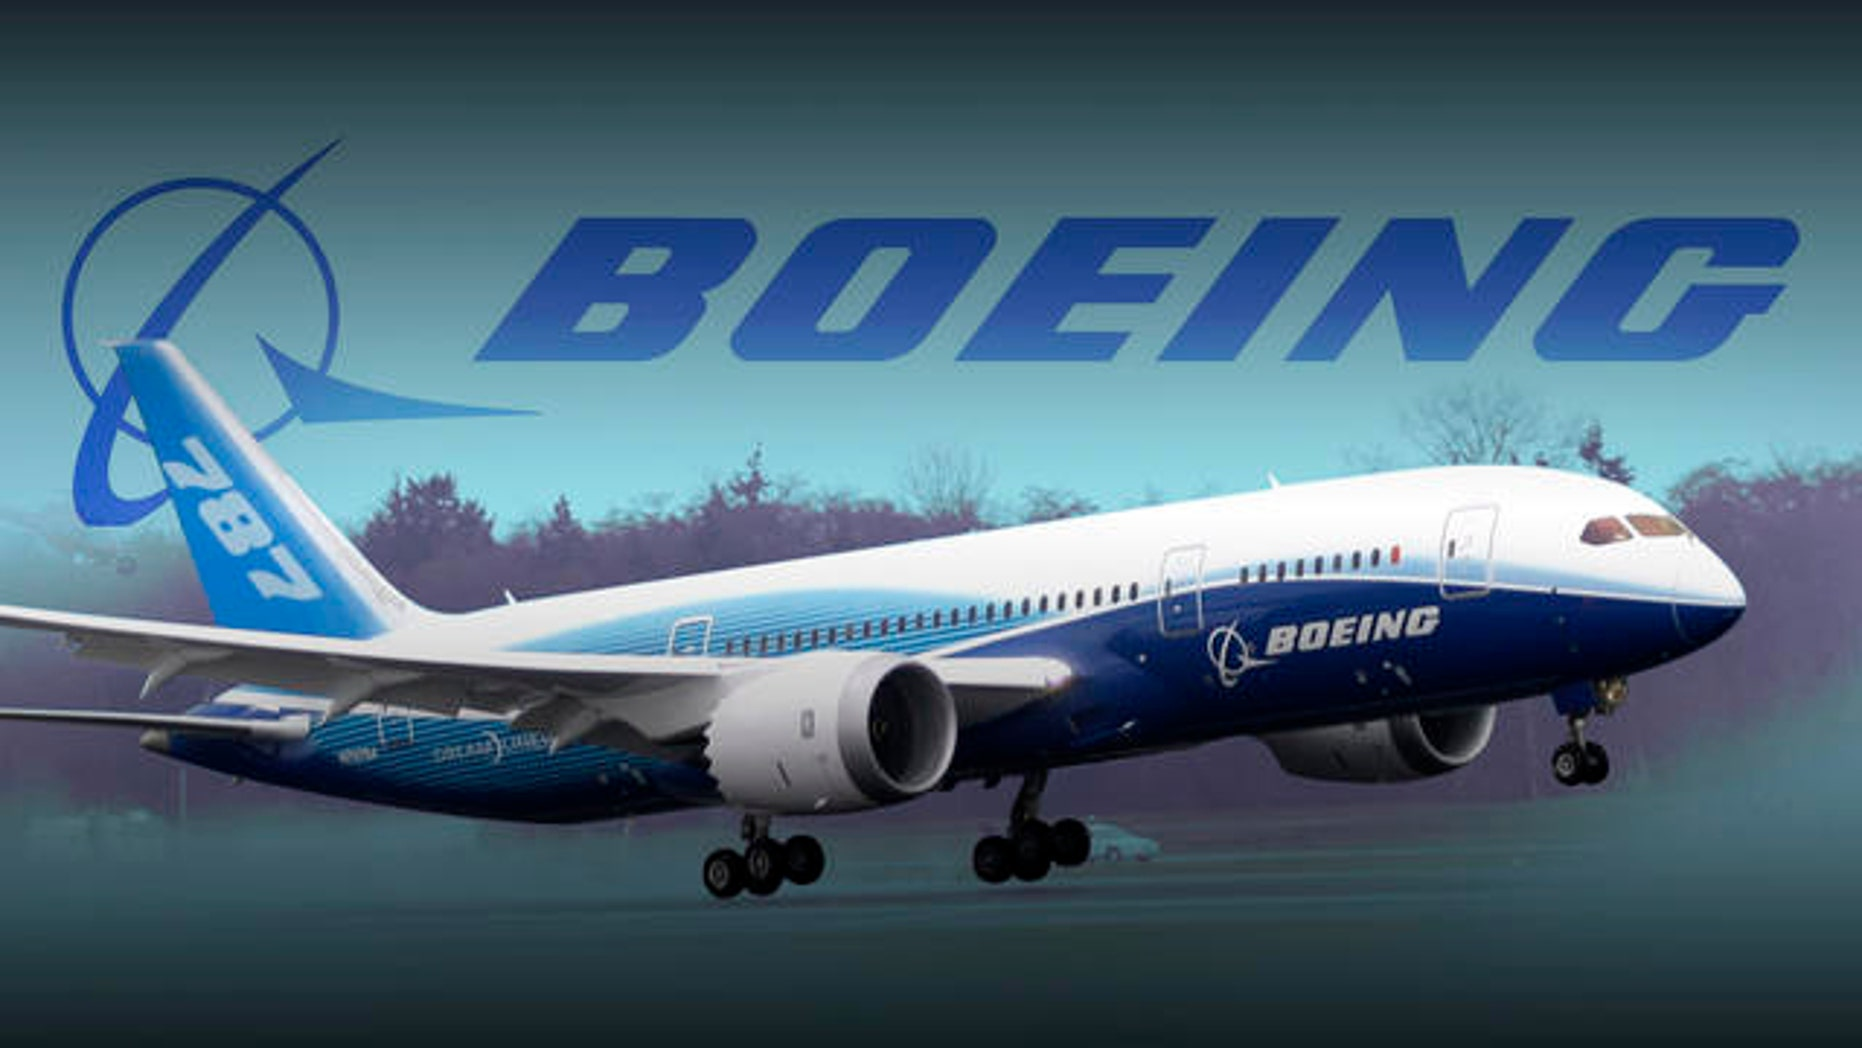 A Boeing Co. 787 airplane.